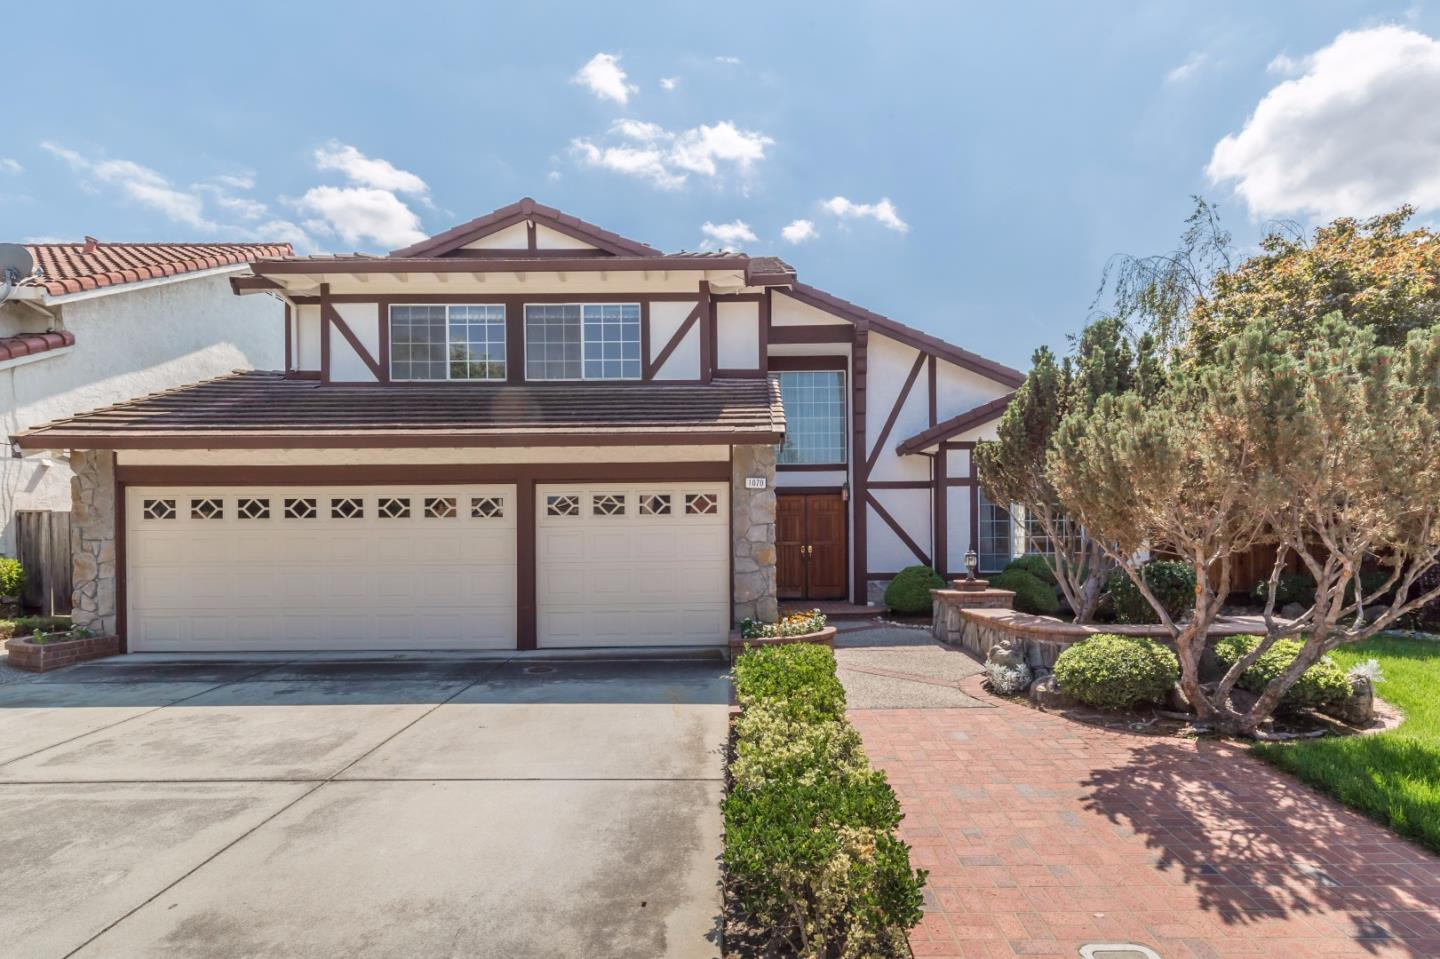 Single Family Home for Sale at 1070 Westridge Drive 1070 Westridge Drive Milpitas, California 95035 United States